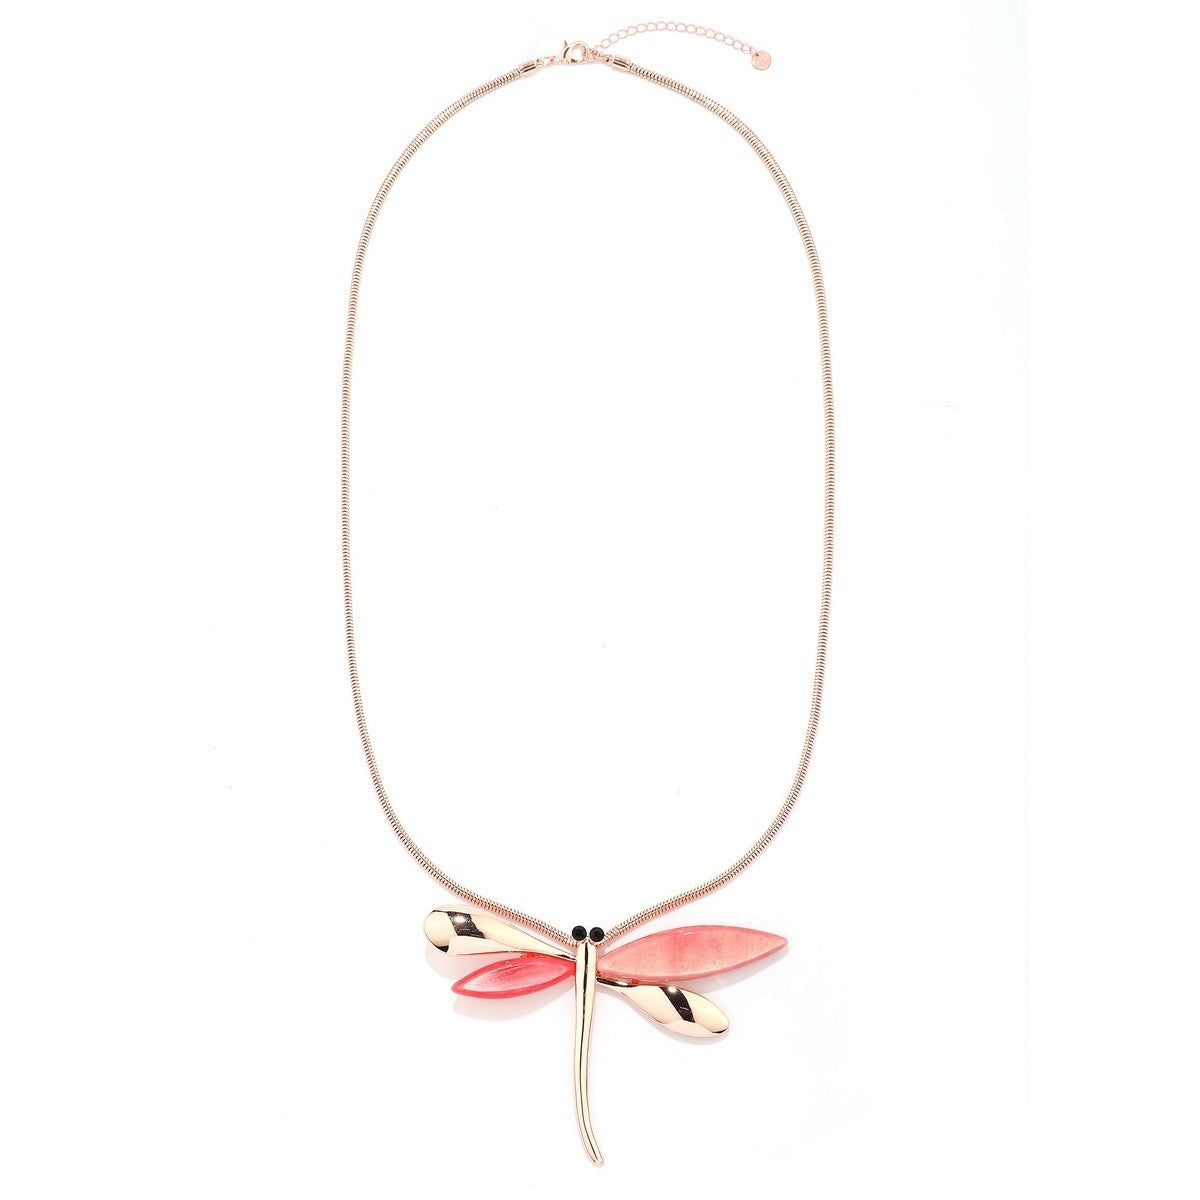 jewelry design necklace for women fashion accessories